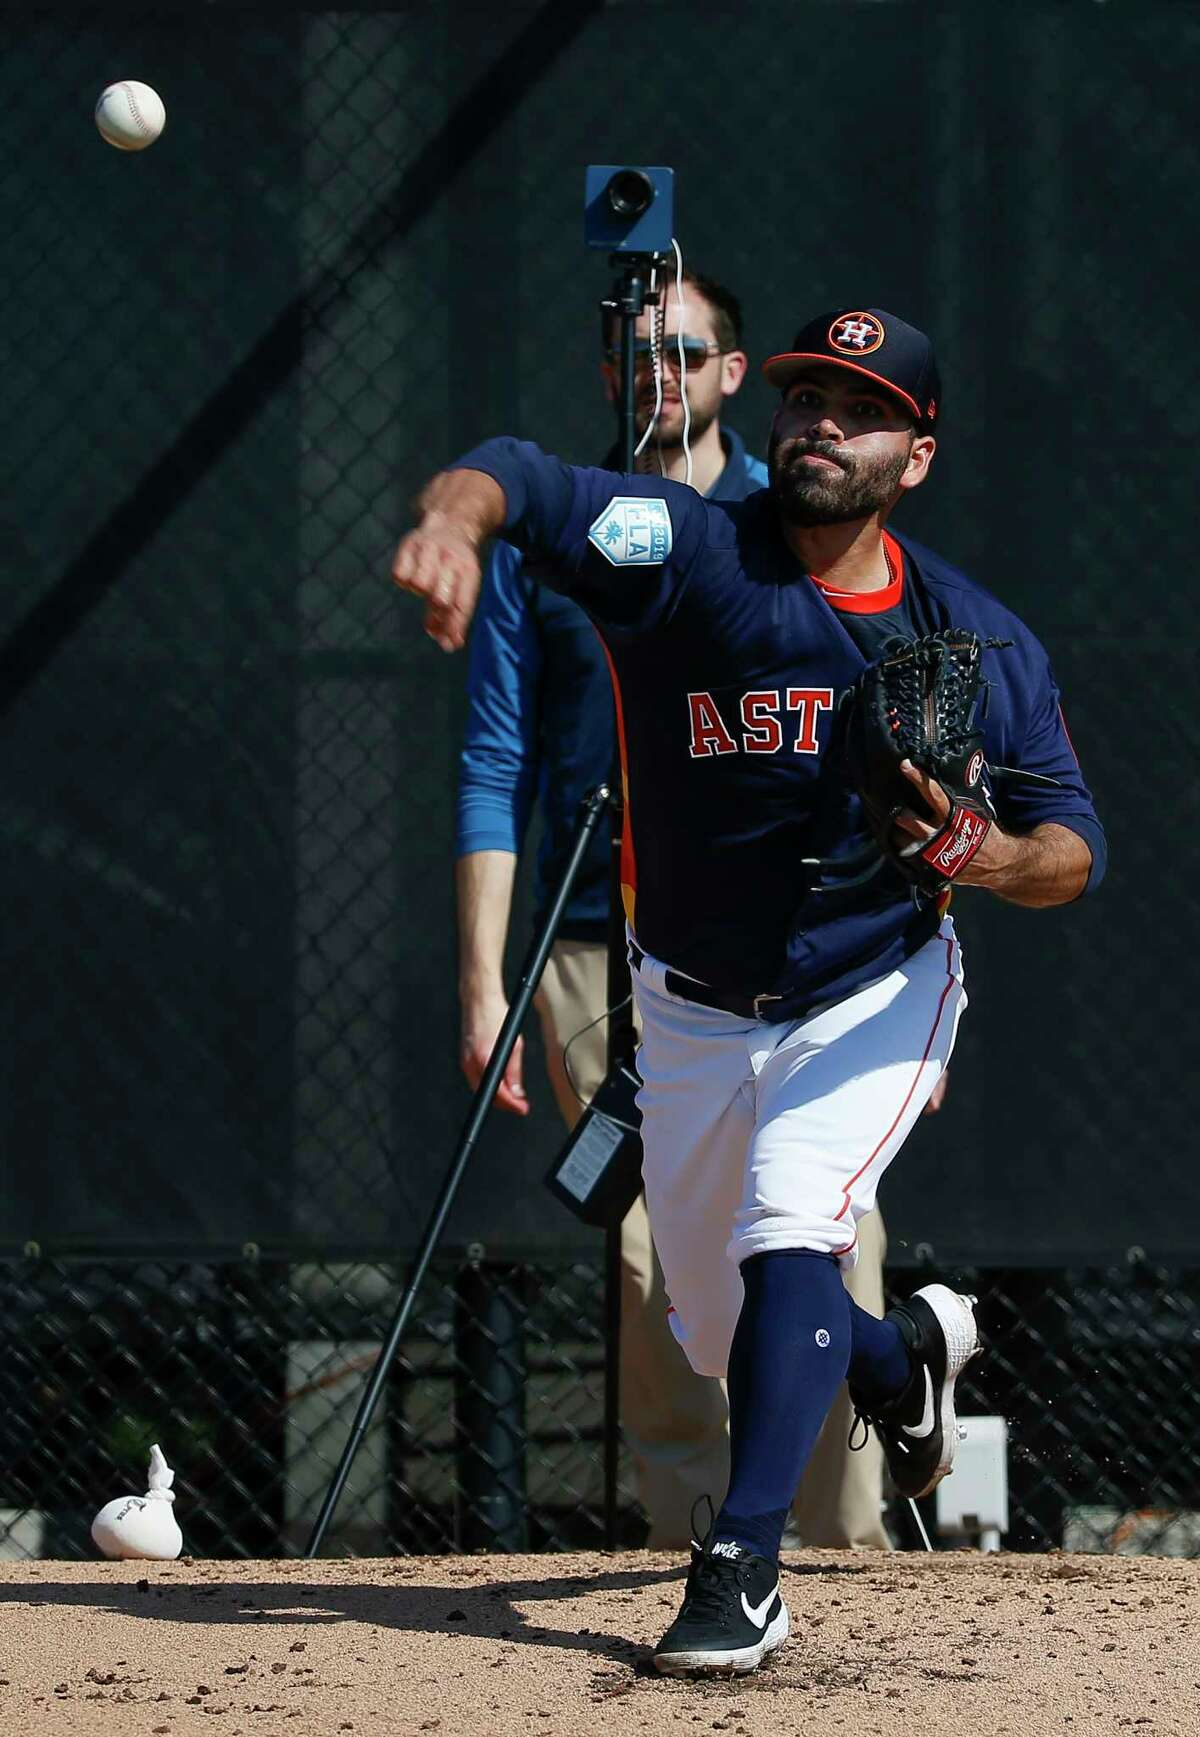 """His stuff Urquidy has a four-pitch mix with his changeup considered as his """"out"""" pitch. His fastball obviously has improved and he has a plus slider to go along with his curveball. He also has great control, allowing just 15 walks, compared to 104 strikeouts in 76 innings split between Corpus Christi and Round Rock this season."""